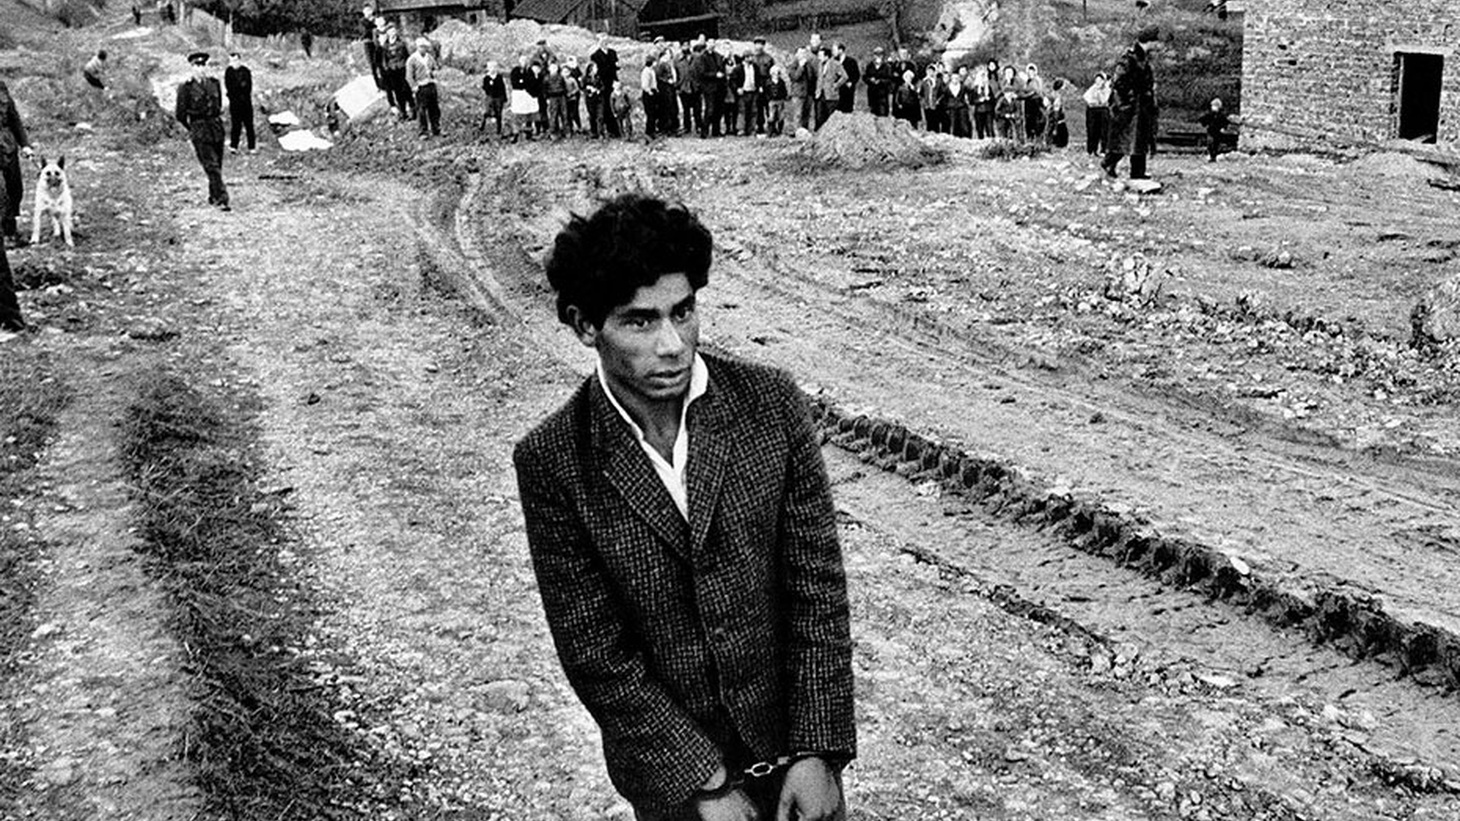 Edward goldman urges listeners to visit the current josef koudelka exhibition at the getty to see